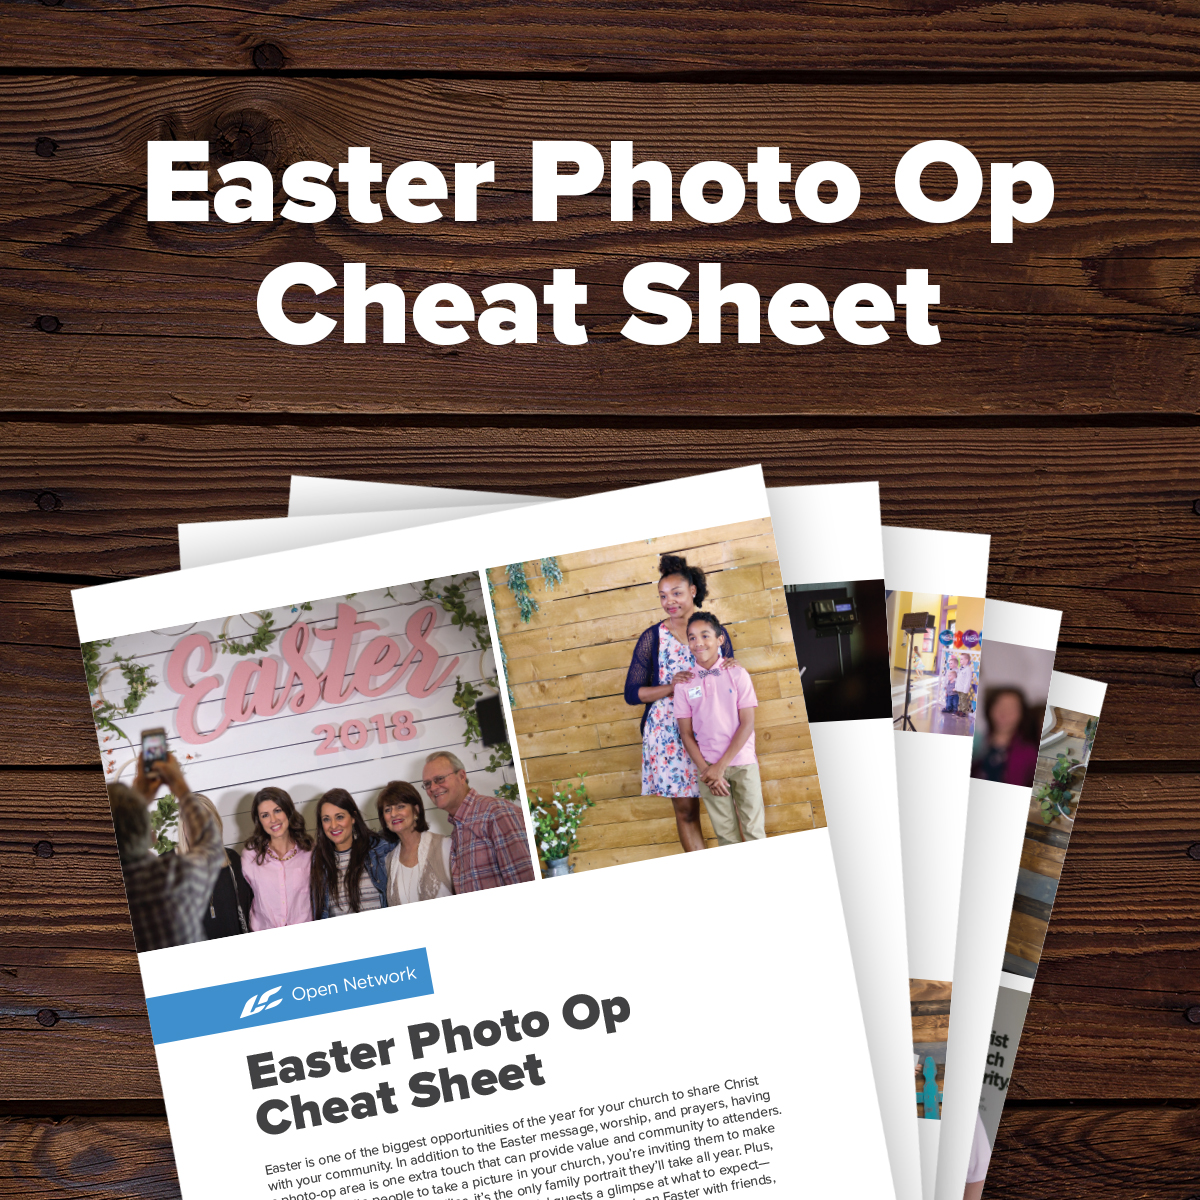 Easter Photo Op Cheat Sheet